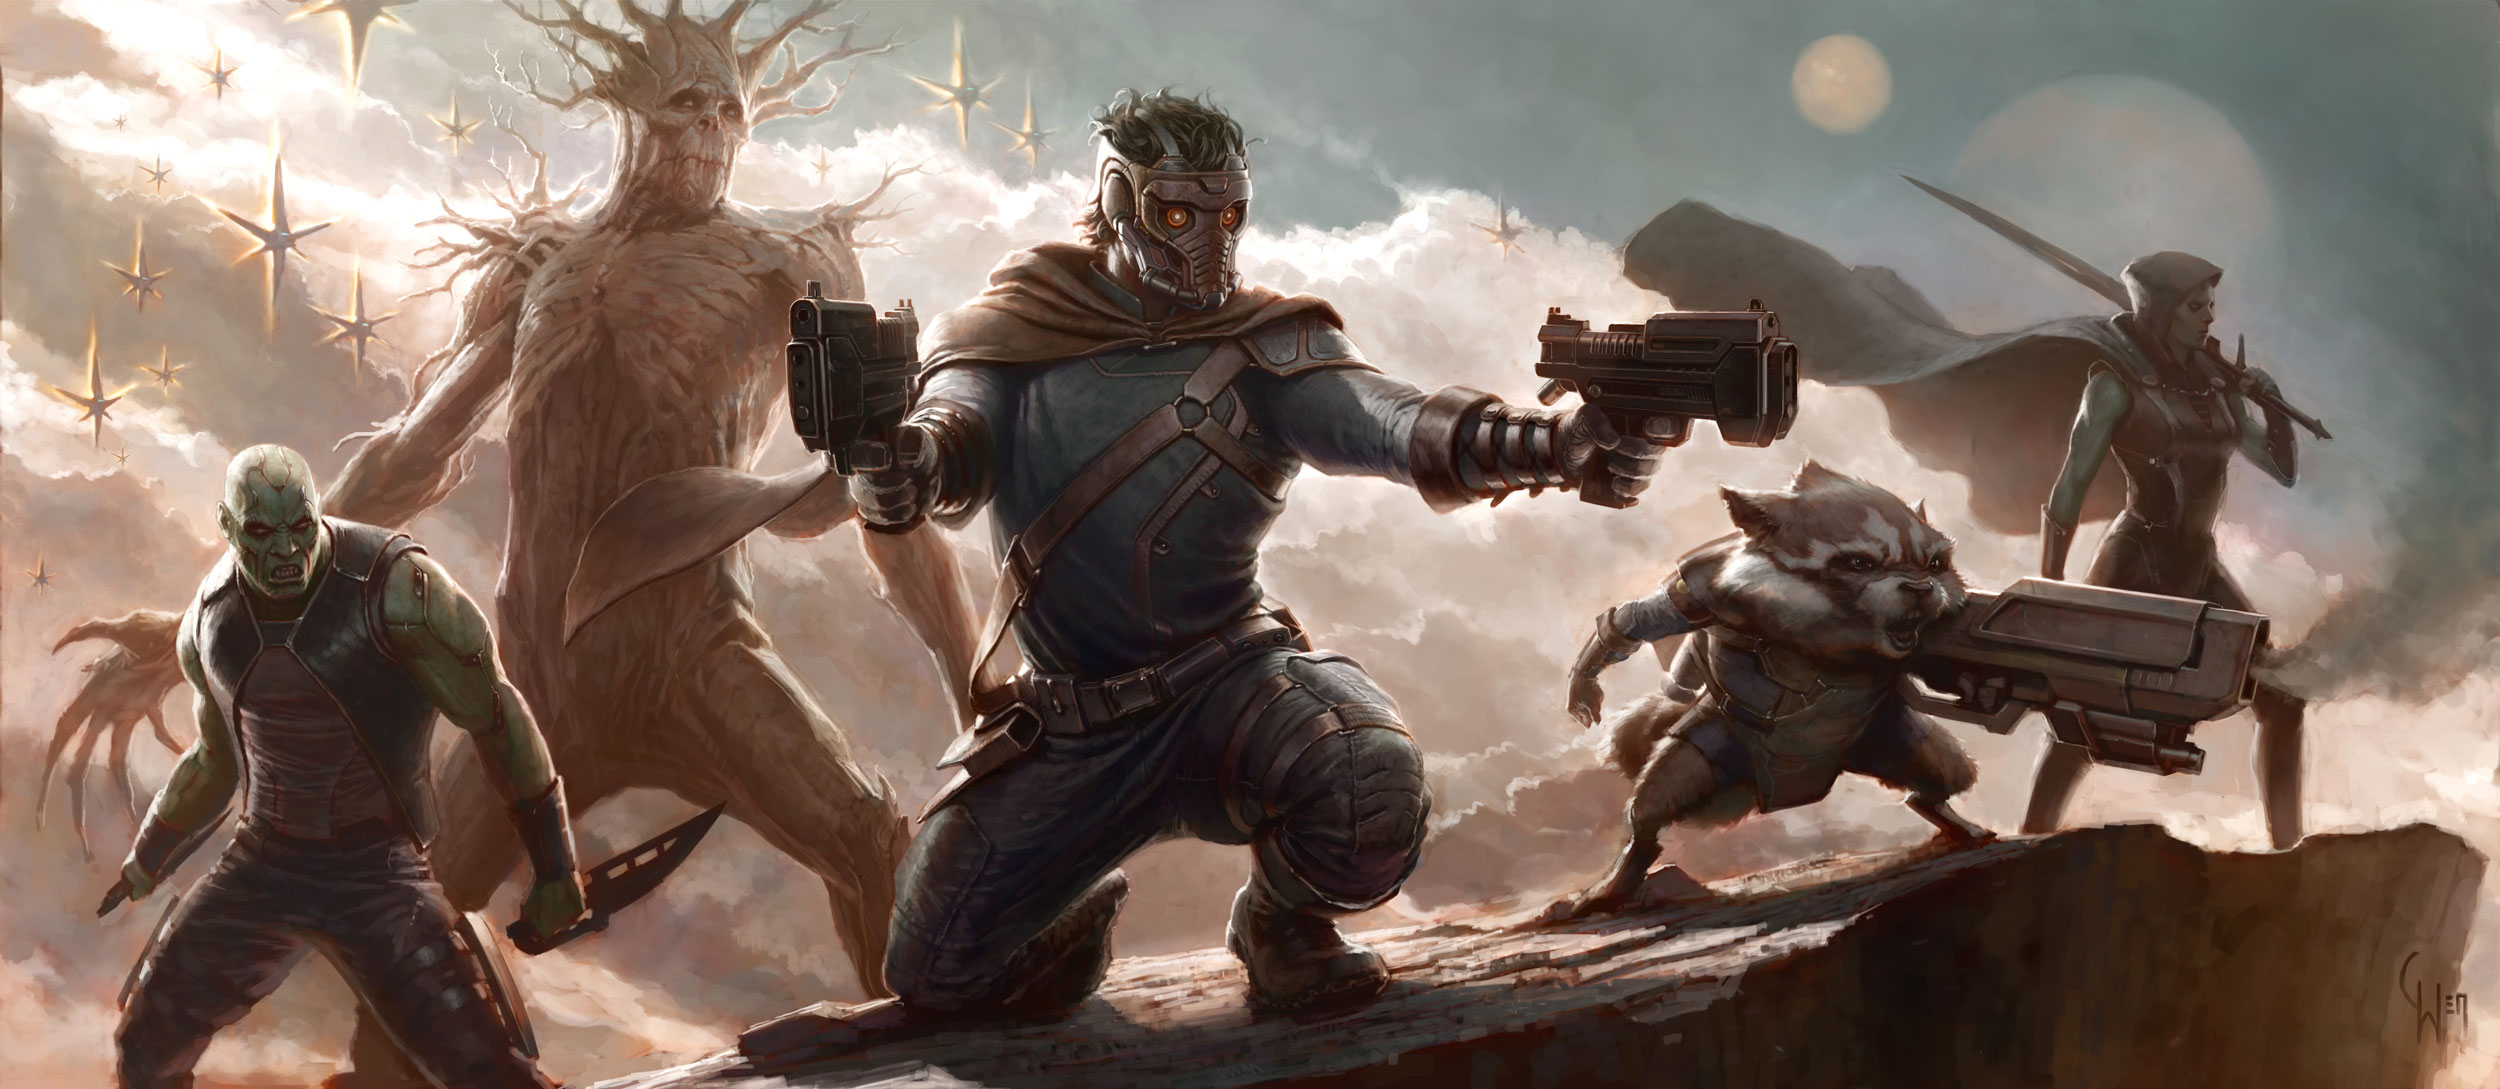 Meet the cast of guardians of the galaxy mxdwn movies